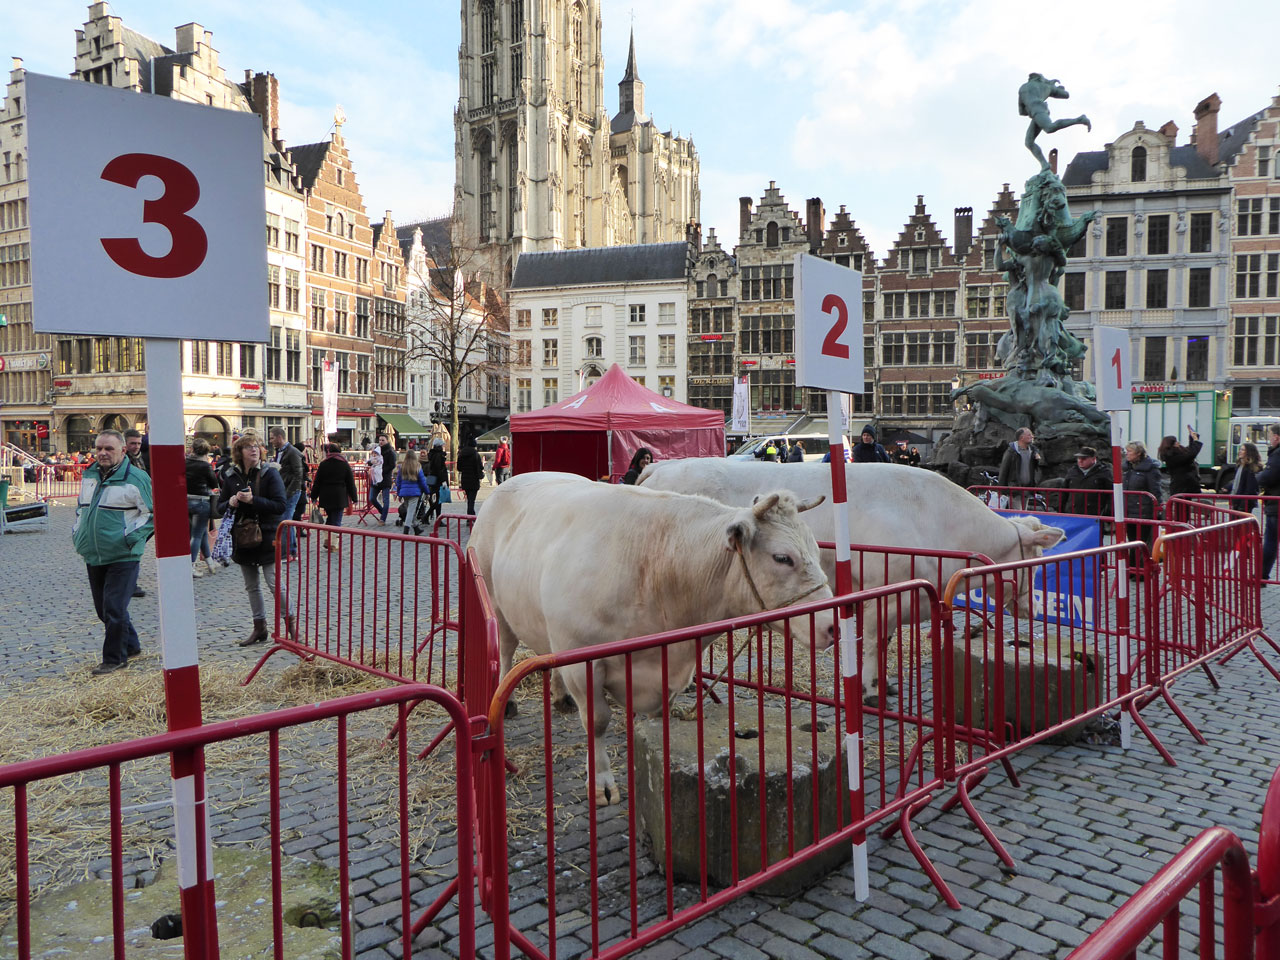 The weighing of the fat ox in Grote Markt, Antwerp